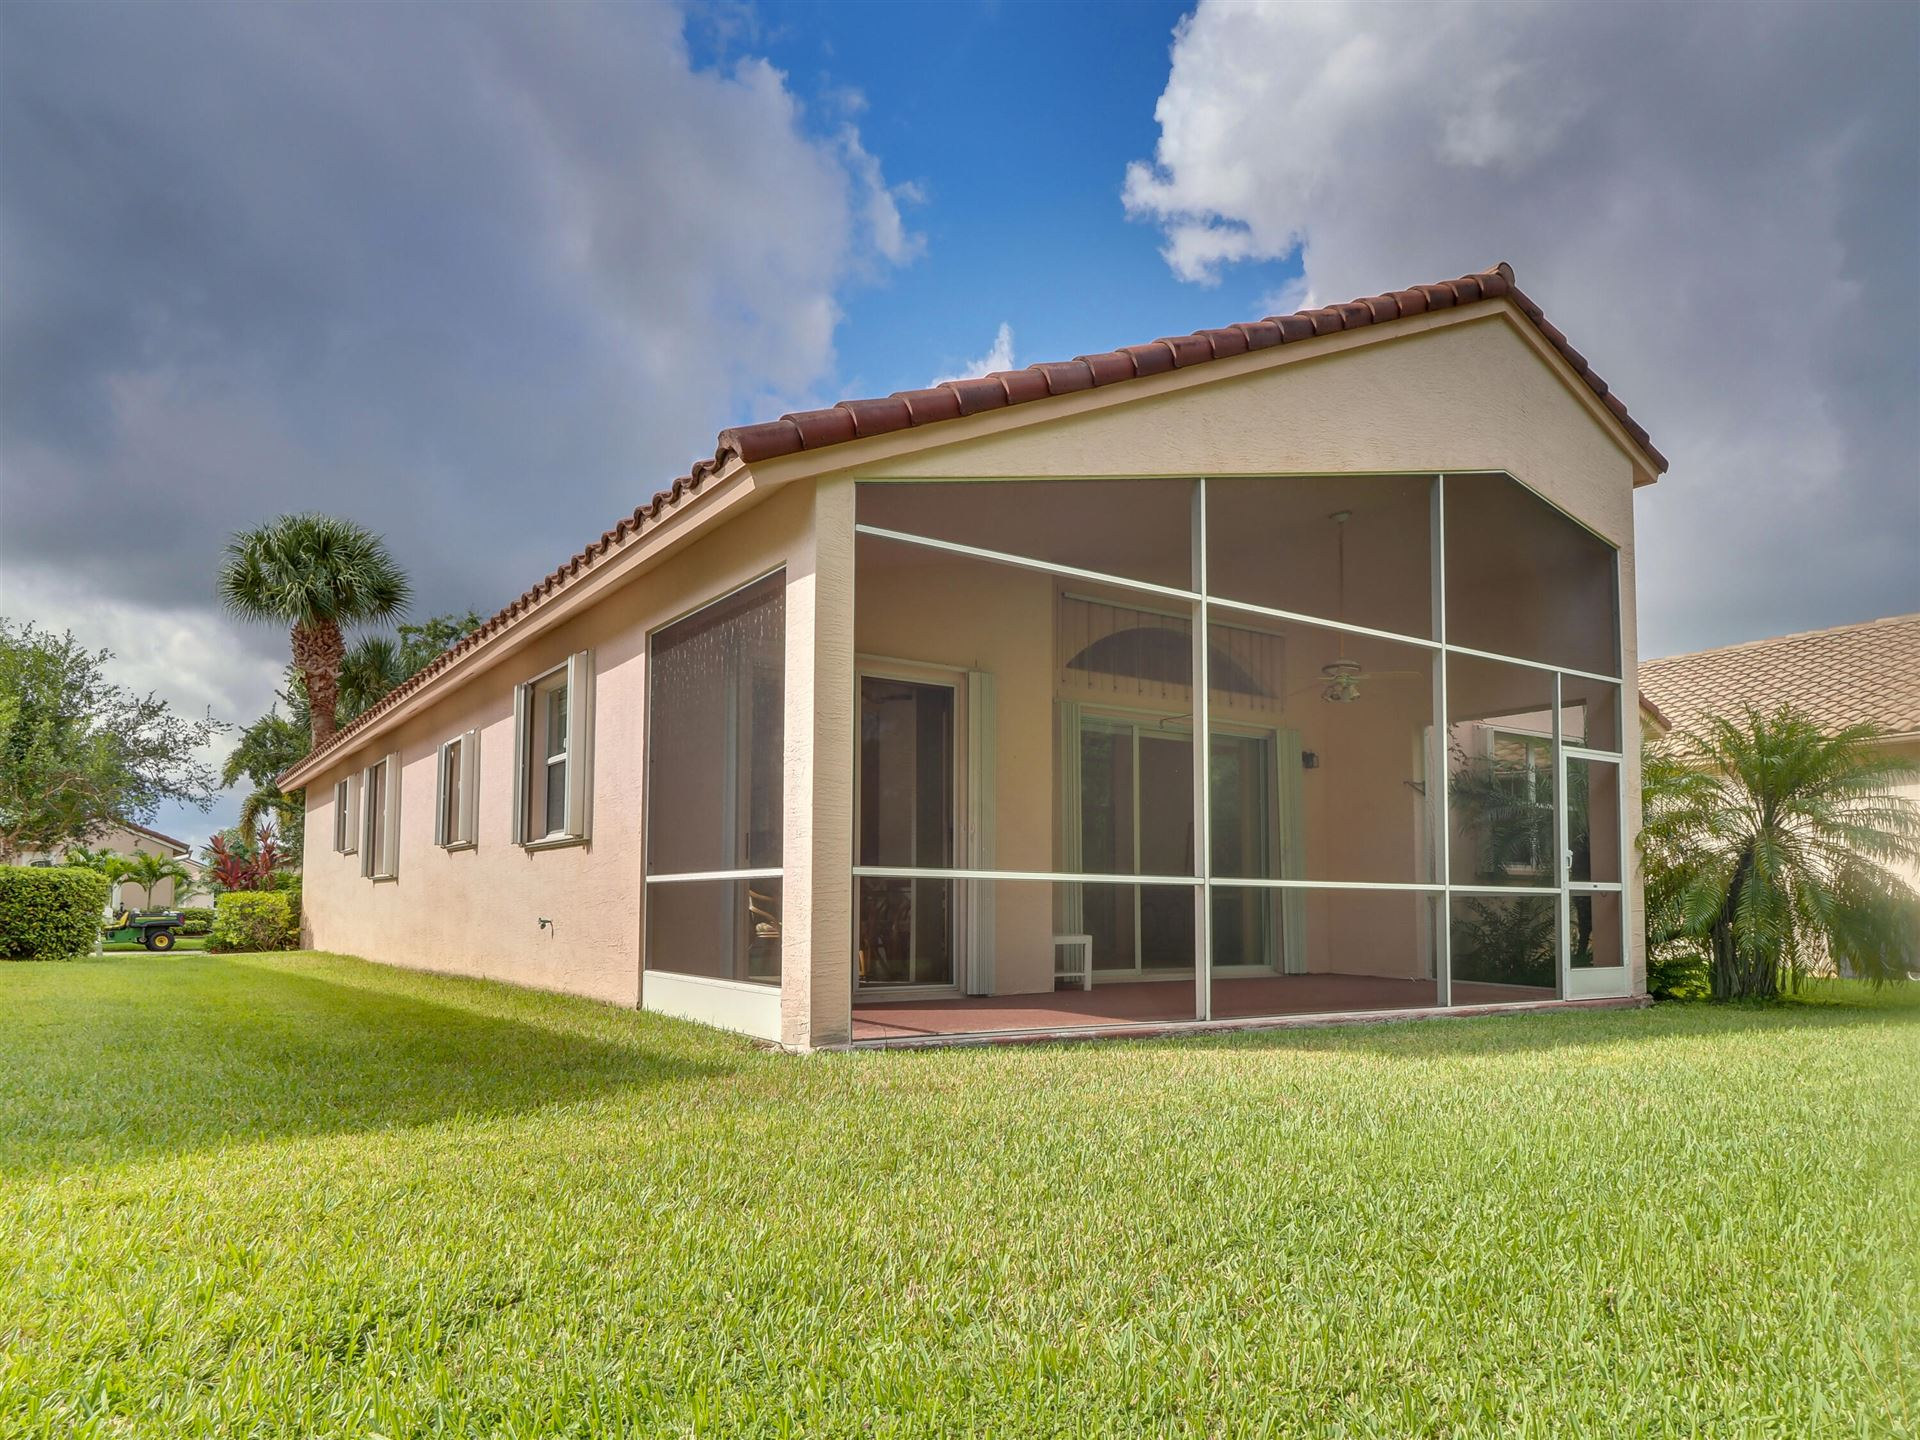 Photo of 404 NW Sunview Way, Port Saint Lucie, FL 34986 (MLS # RX-10747956)